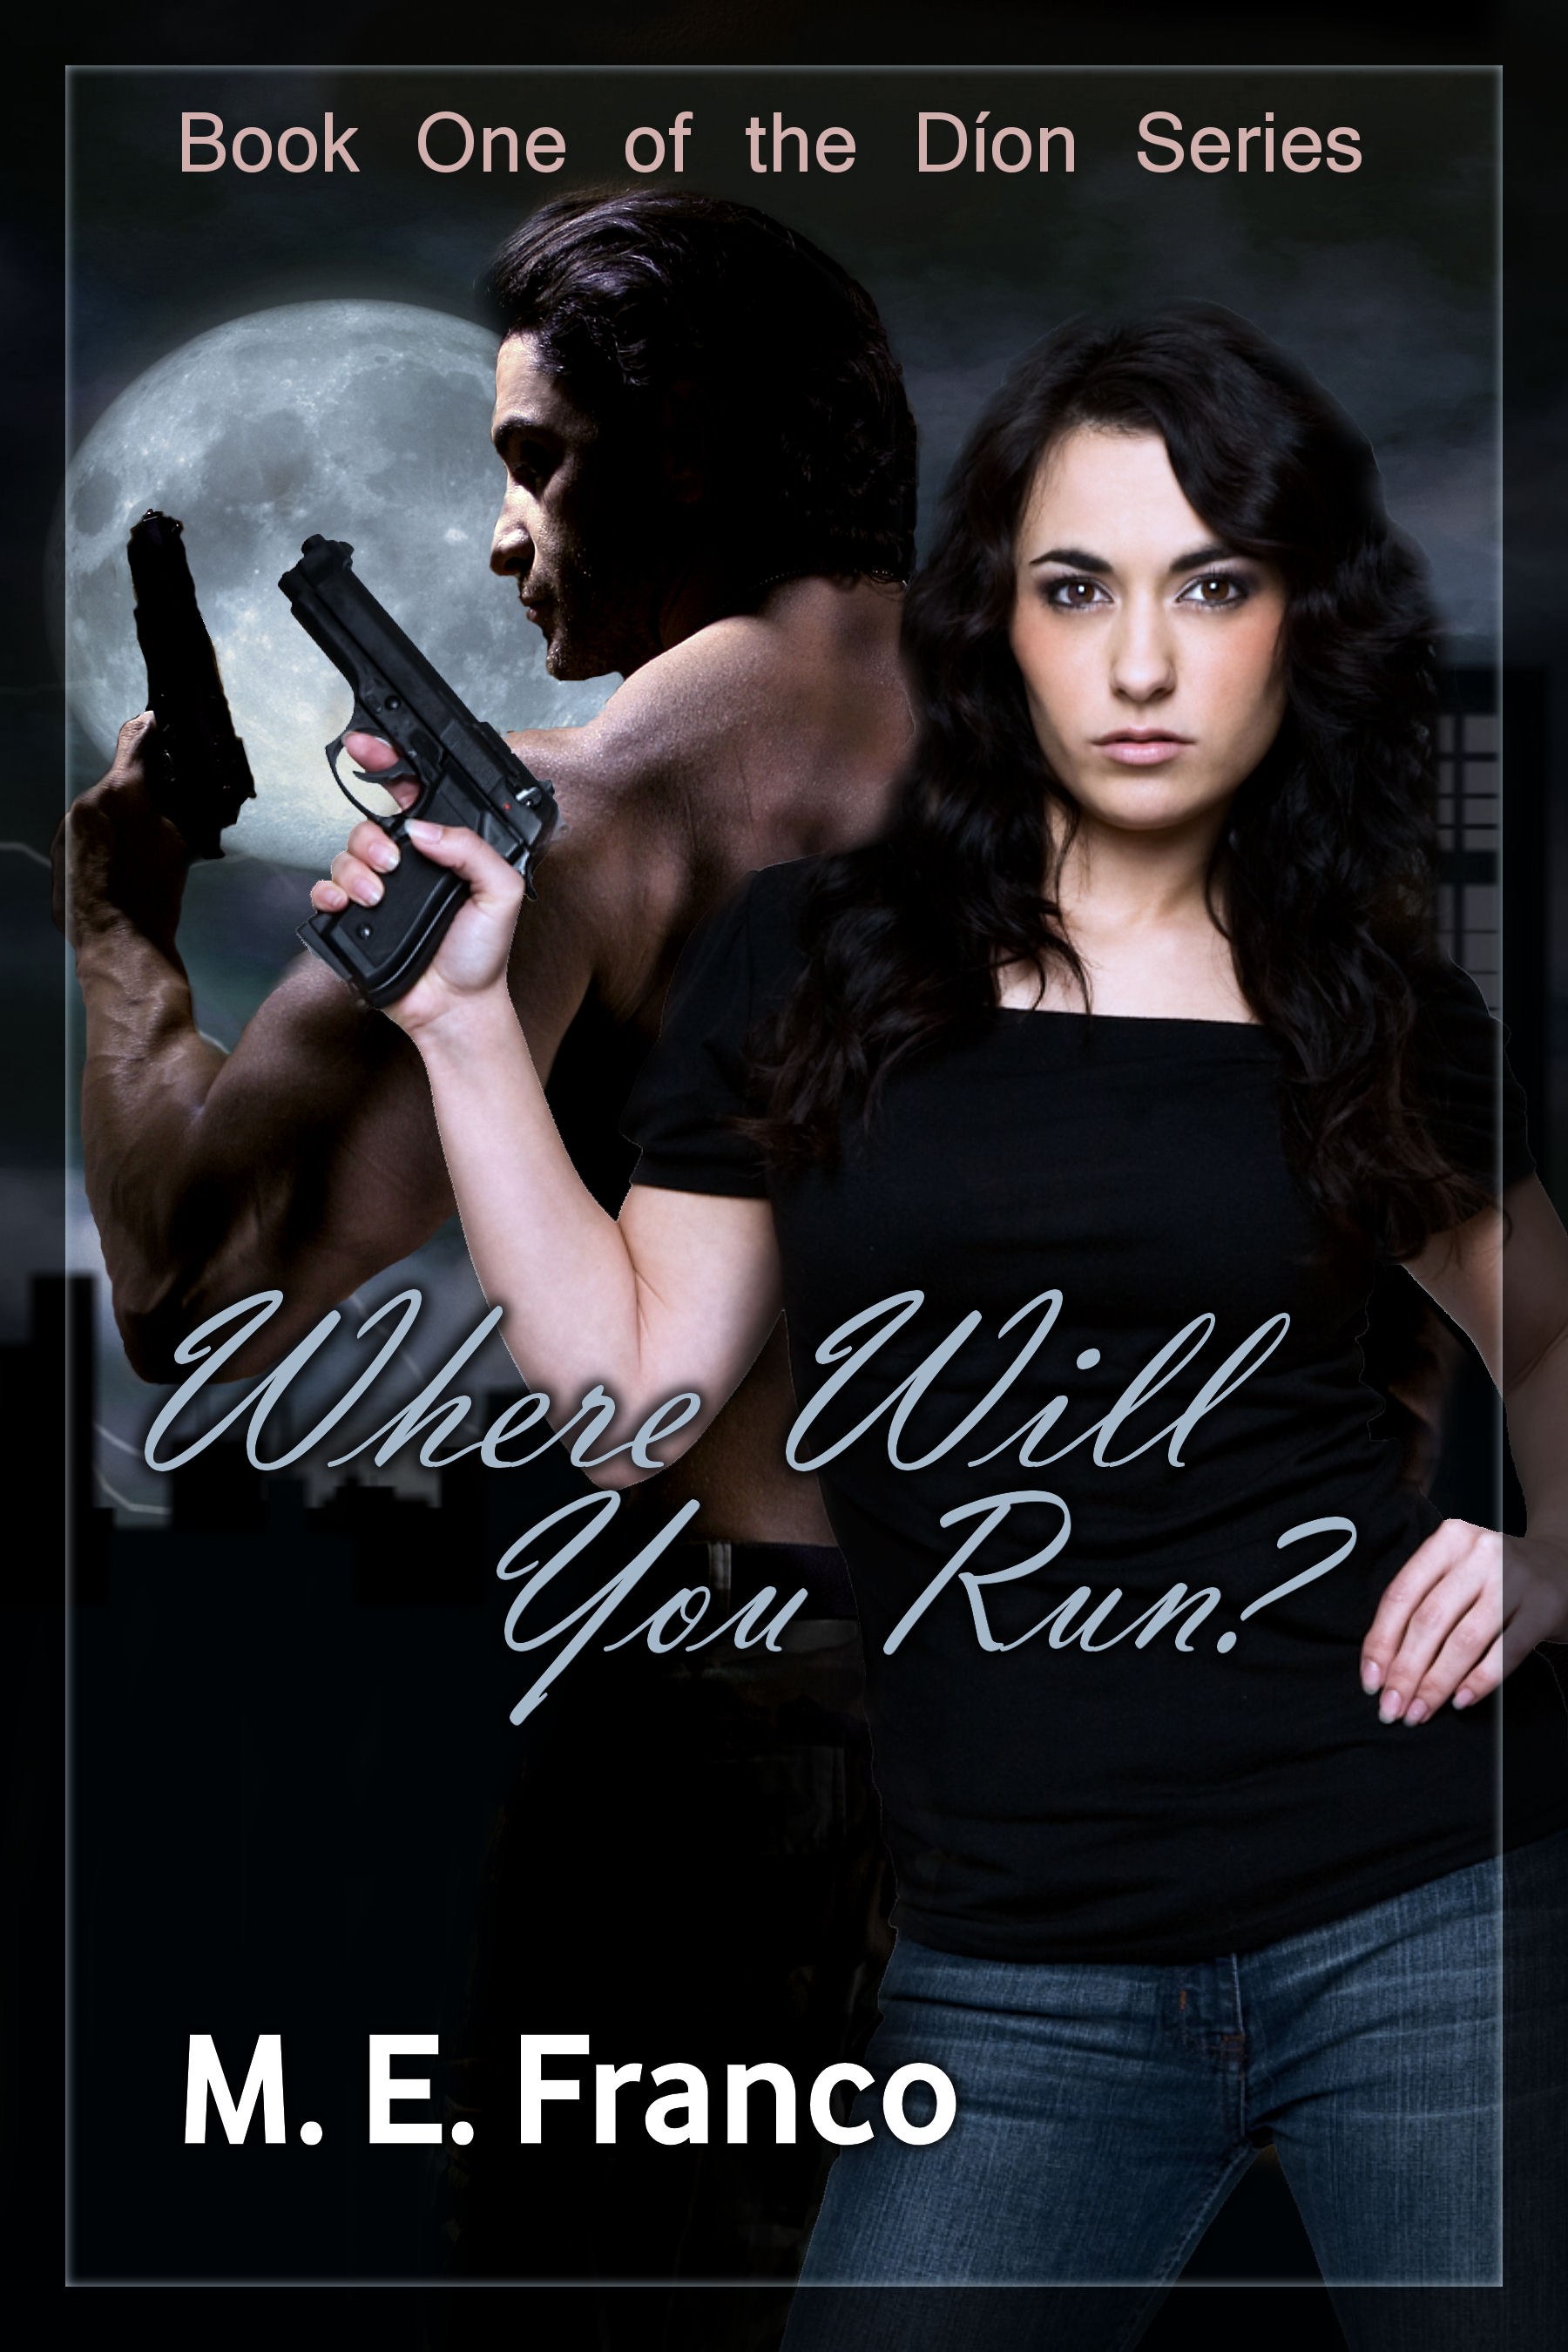 Paranormal Romance Book Covers : Cover reveal for two awesome paranormal romance action